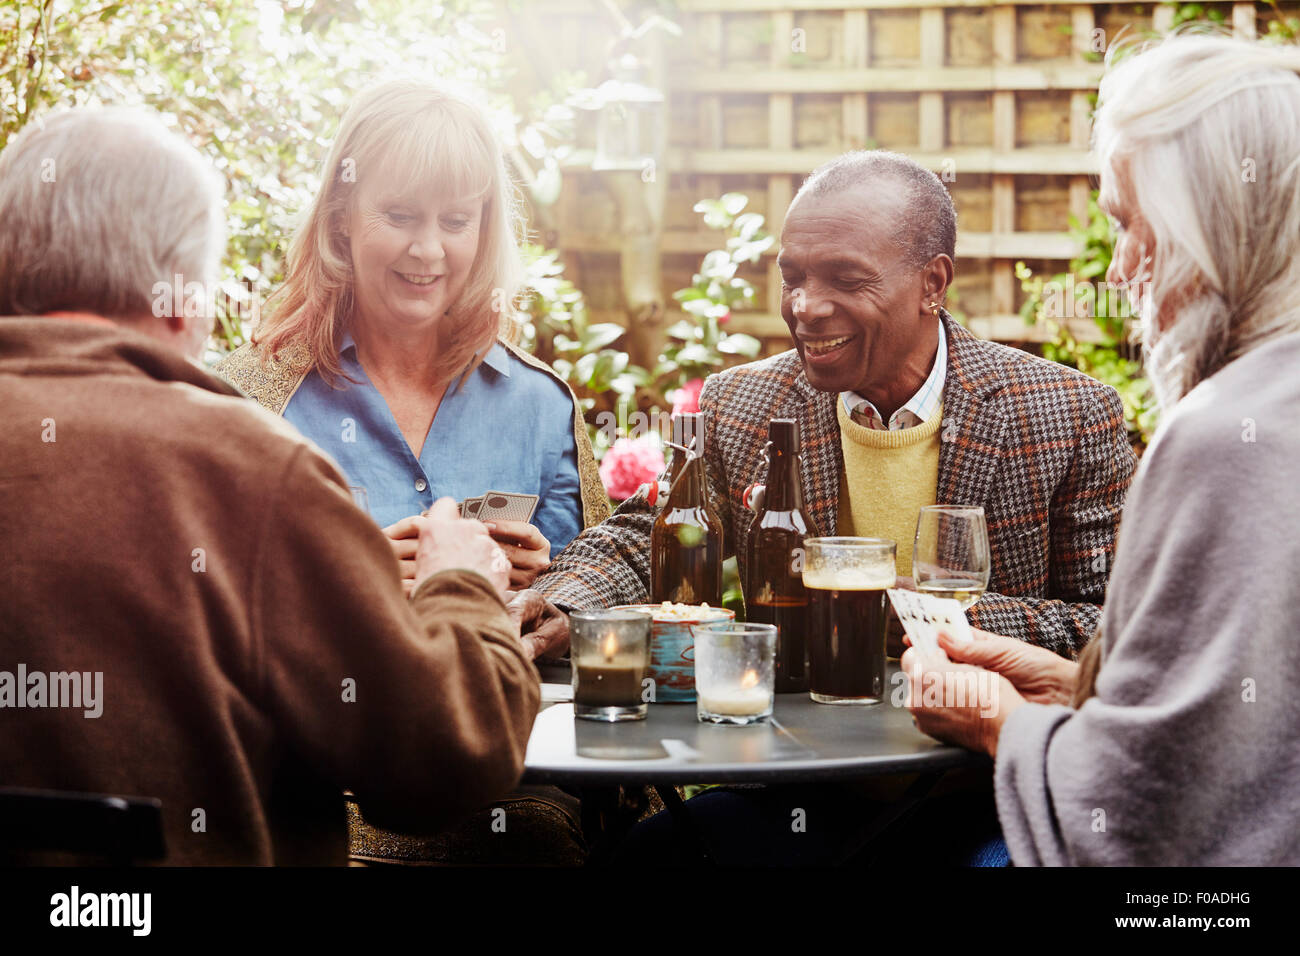 Senior friends drinking and playing cards in garden - Stock Image